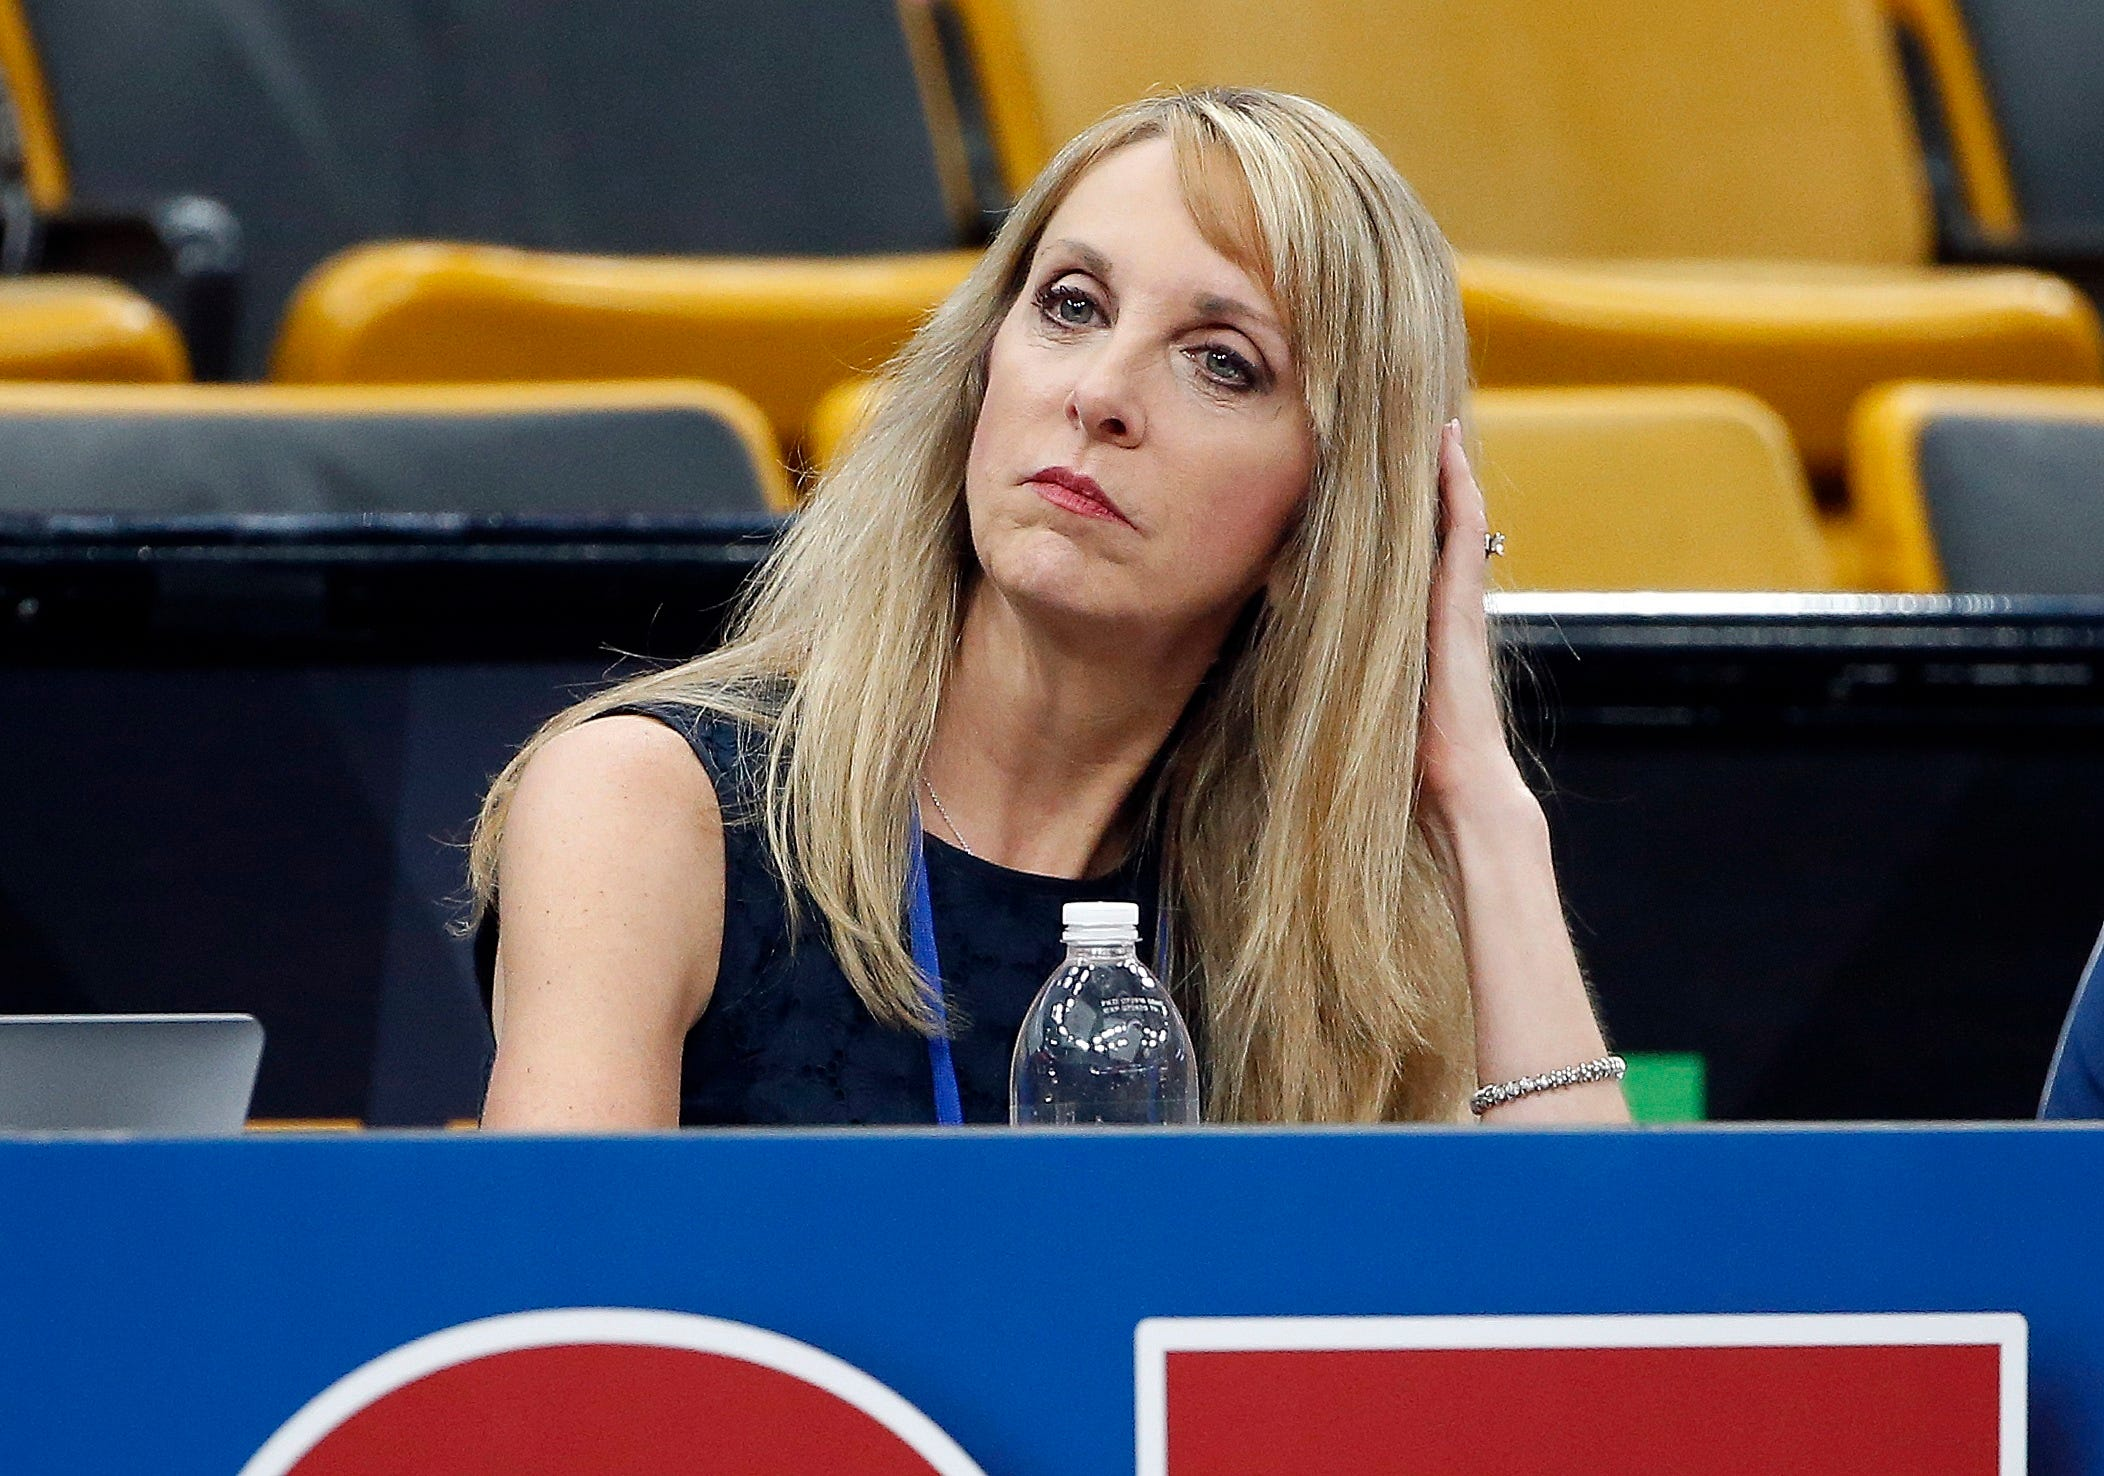 USA Gymnastics CEO forced out after nine months marked by chaos, lack of tangible action